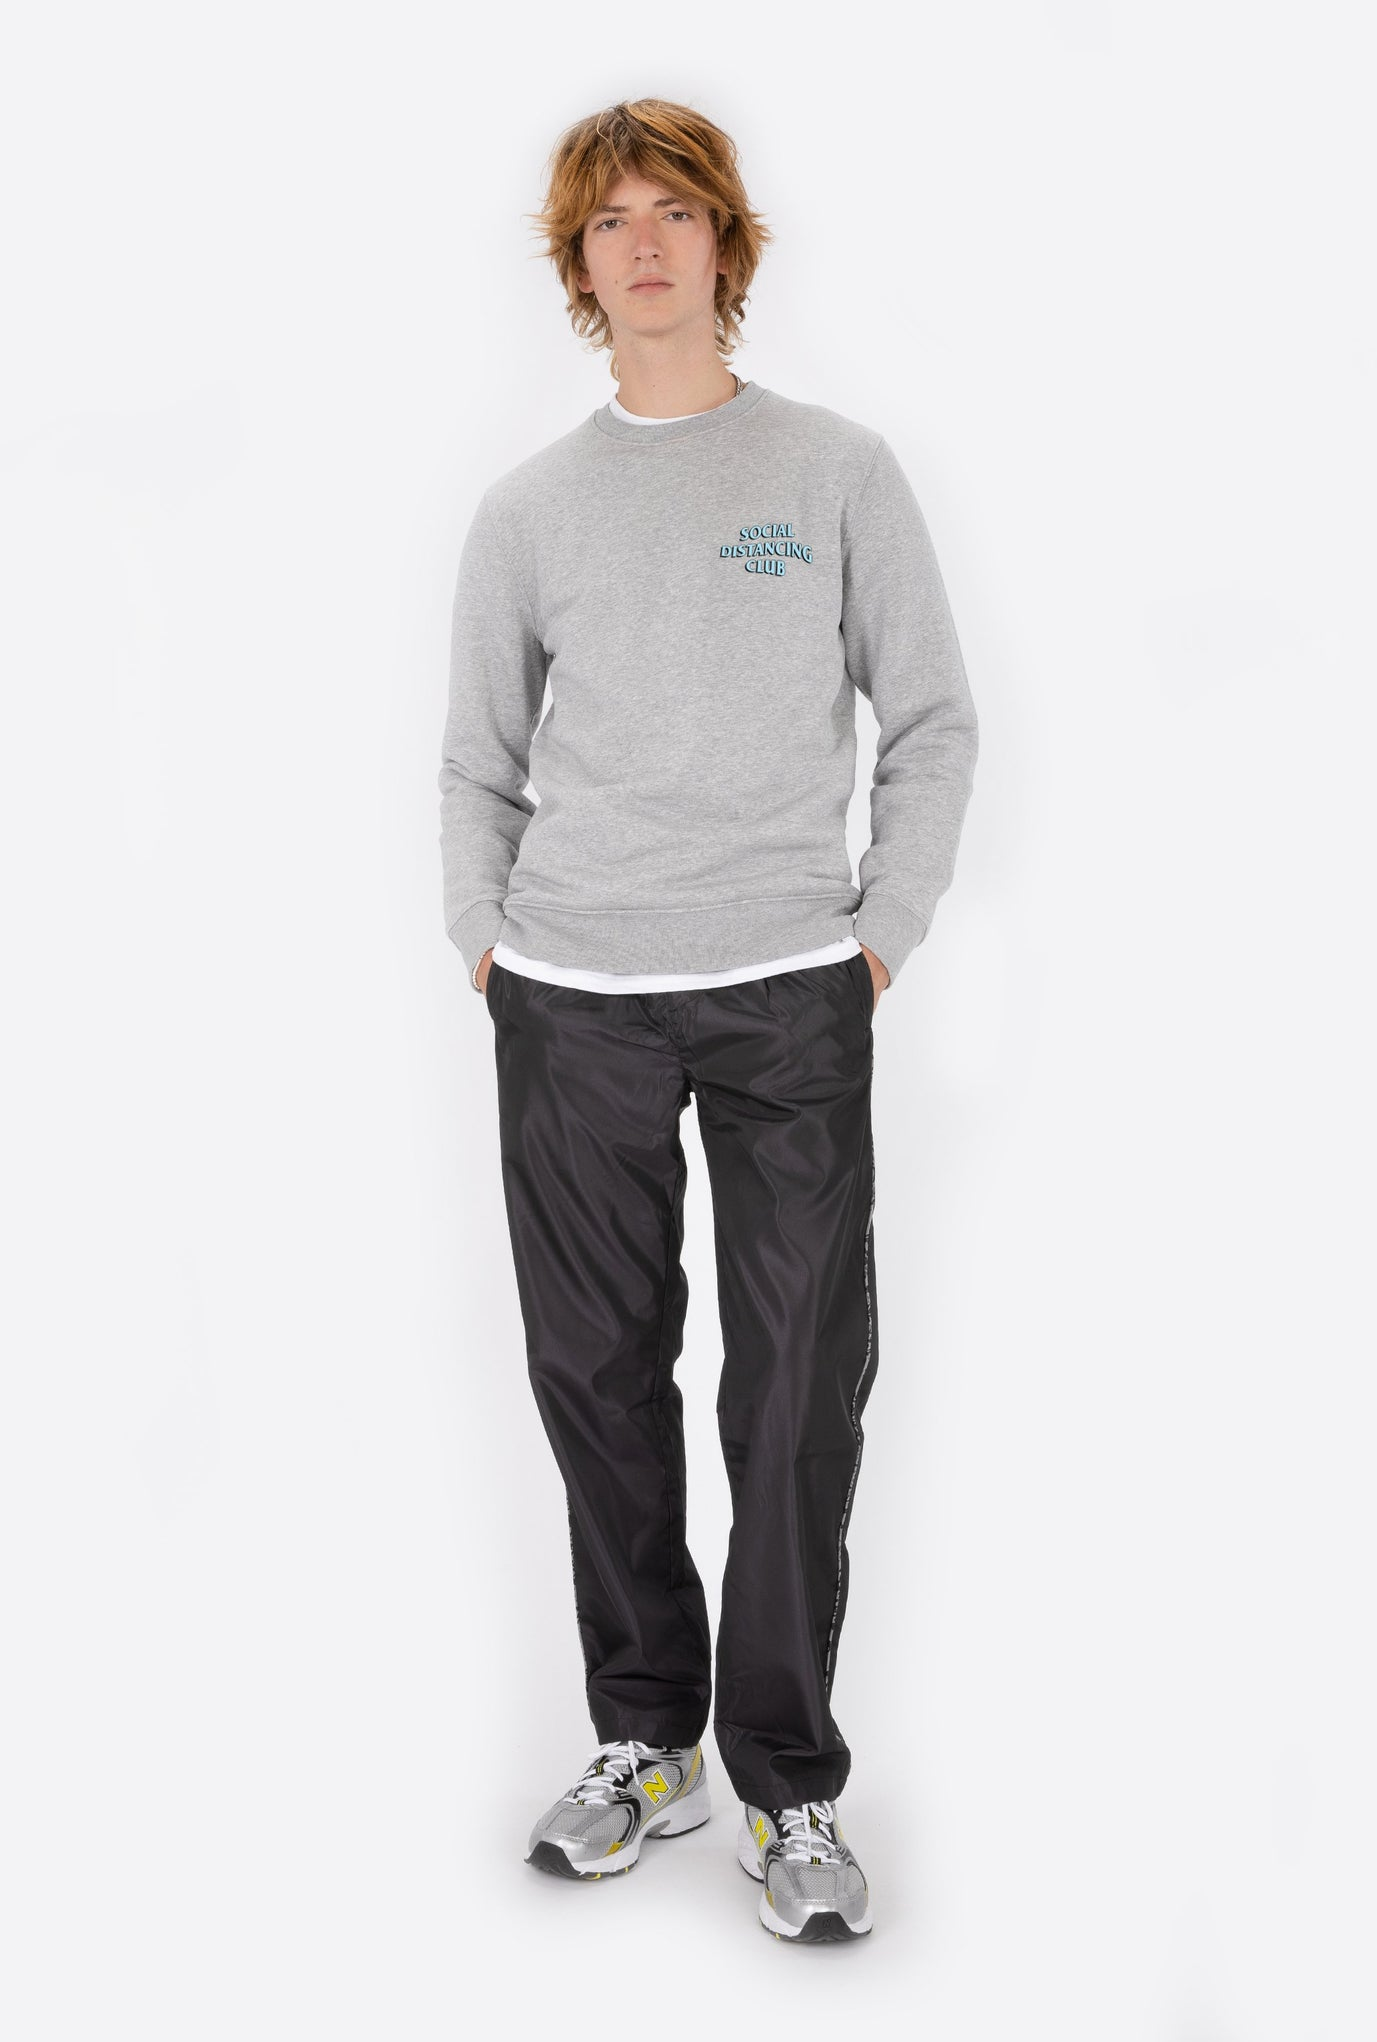 Crewneck Heather Grey Social Distancing